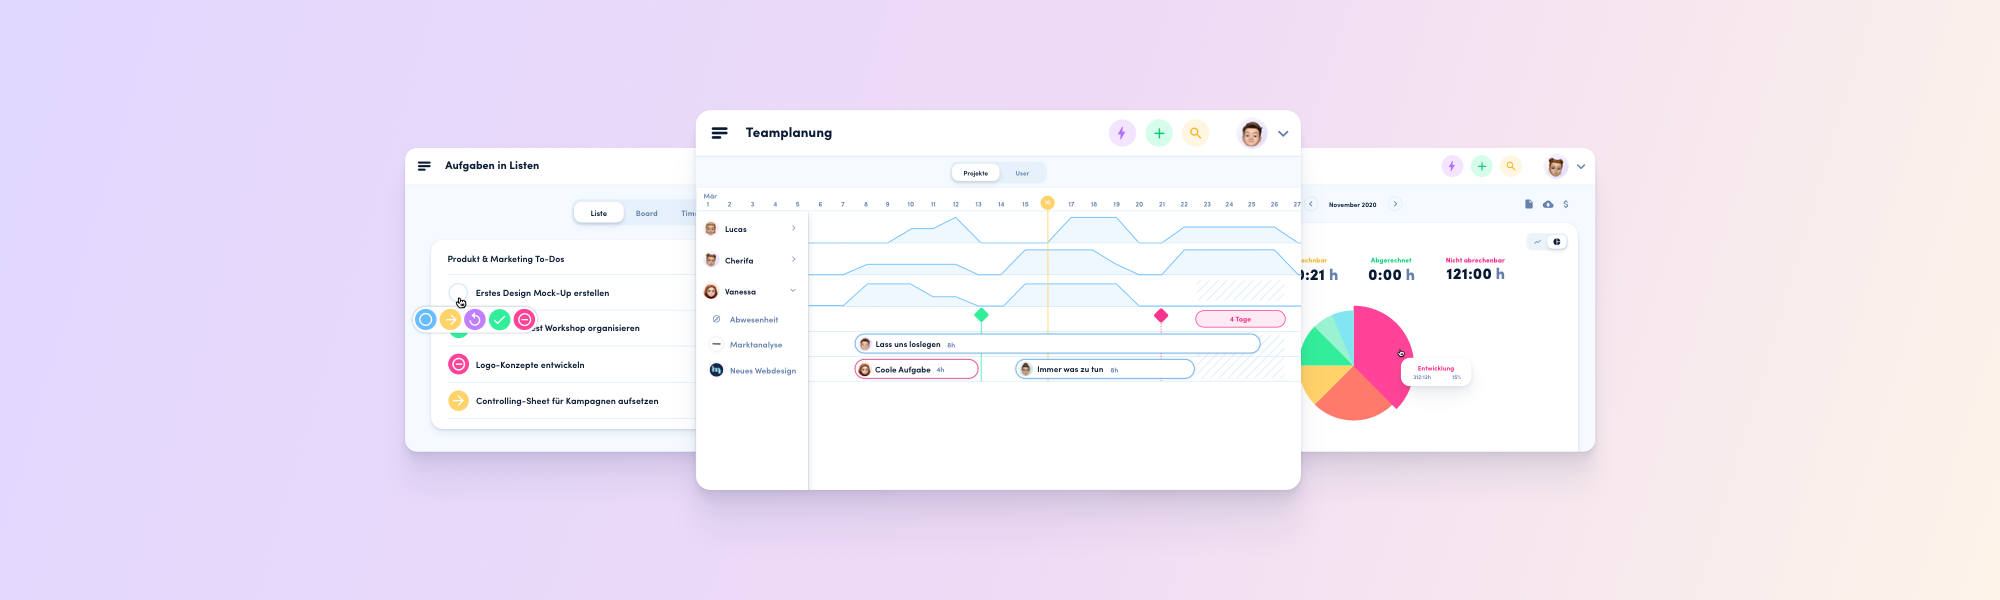 Bewertungen awork: Joyful Work Management - für kreative Teams - appvizer